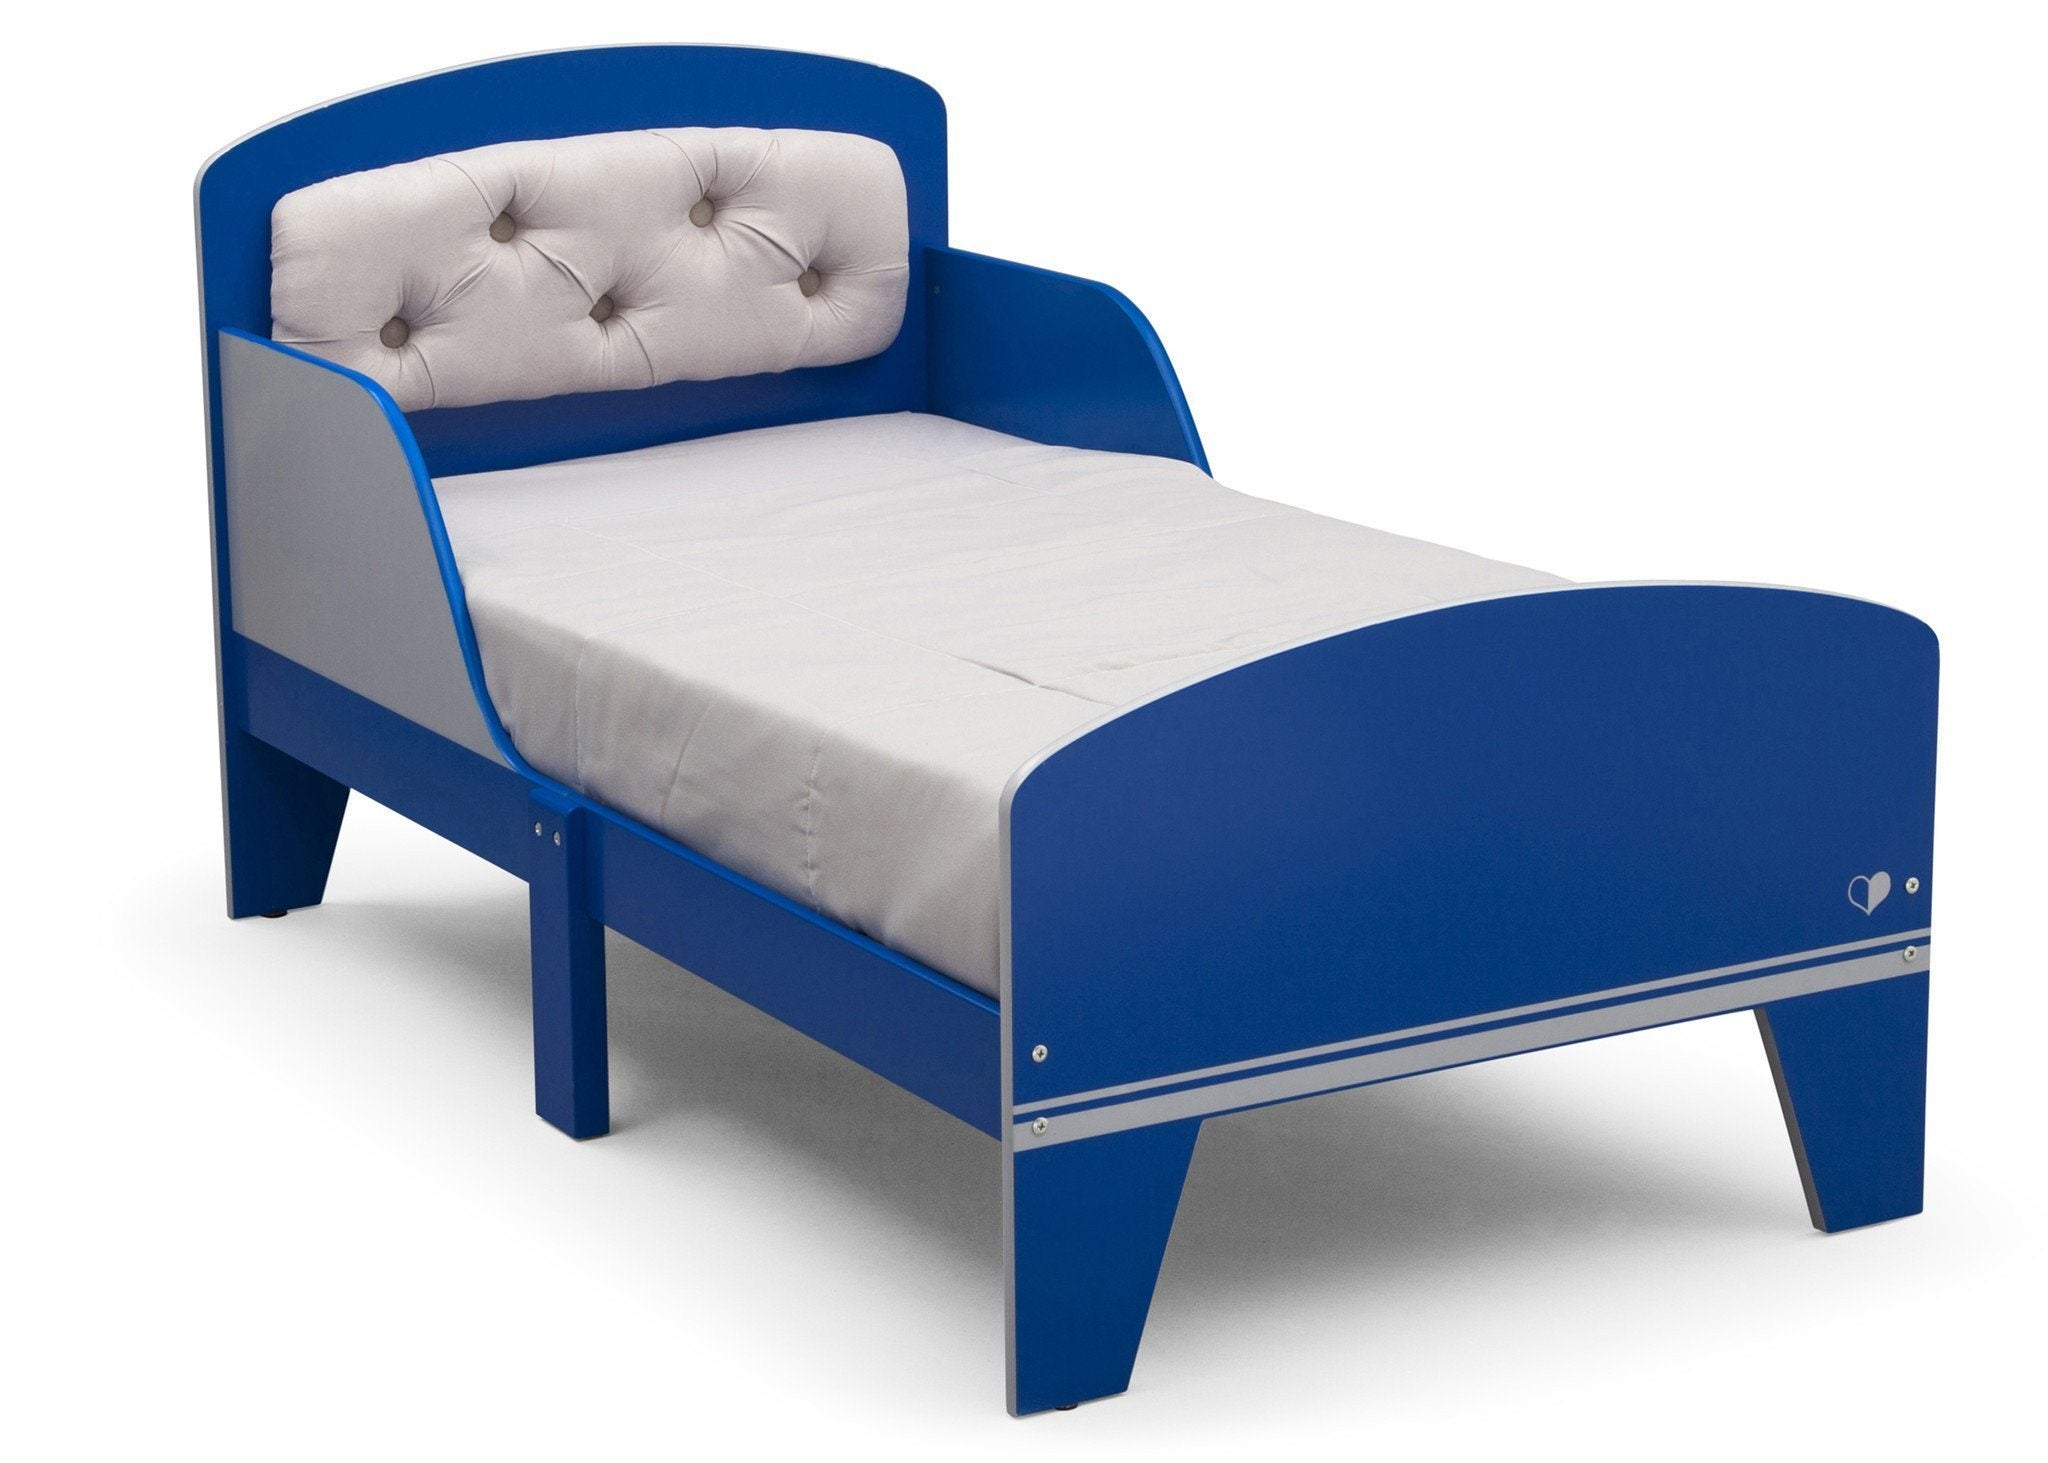 Delta Children Blue And Grey Jack And Jill Toddler Bed With Upholstered  Headboard Style 1, ...